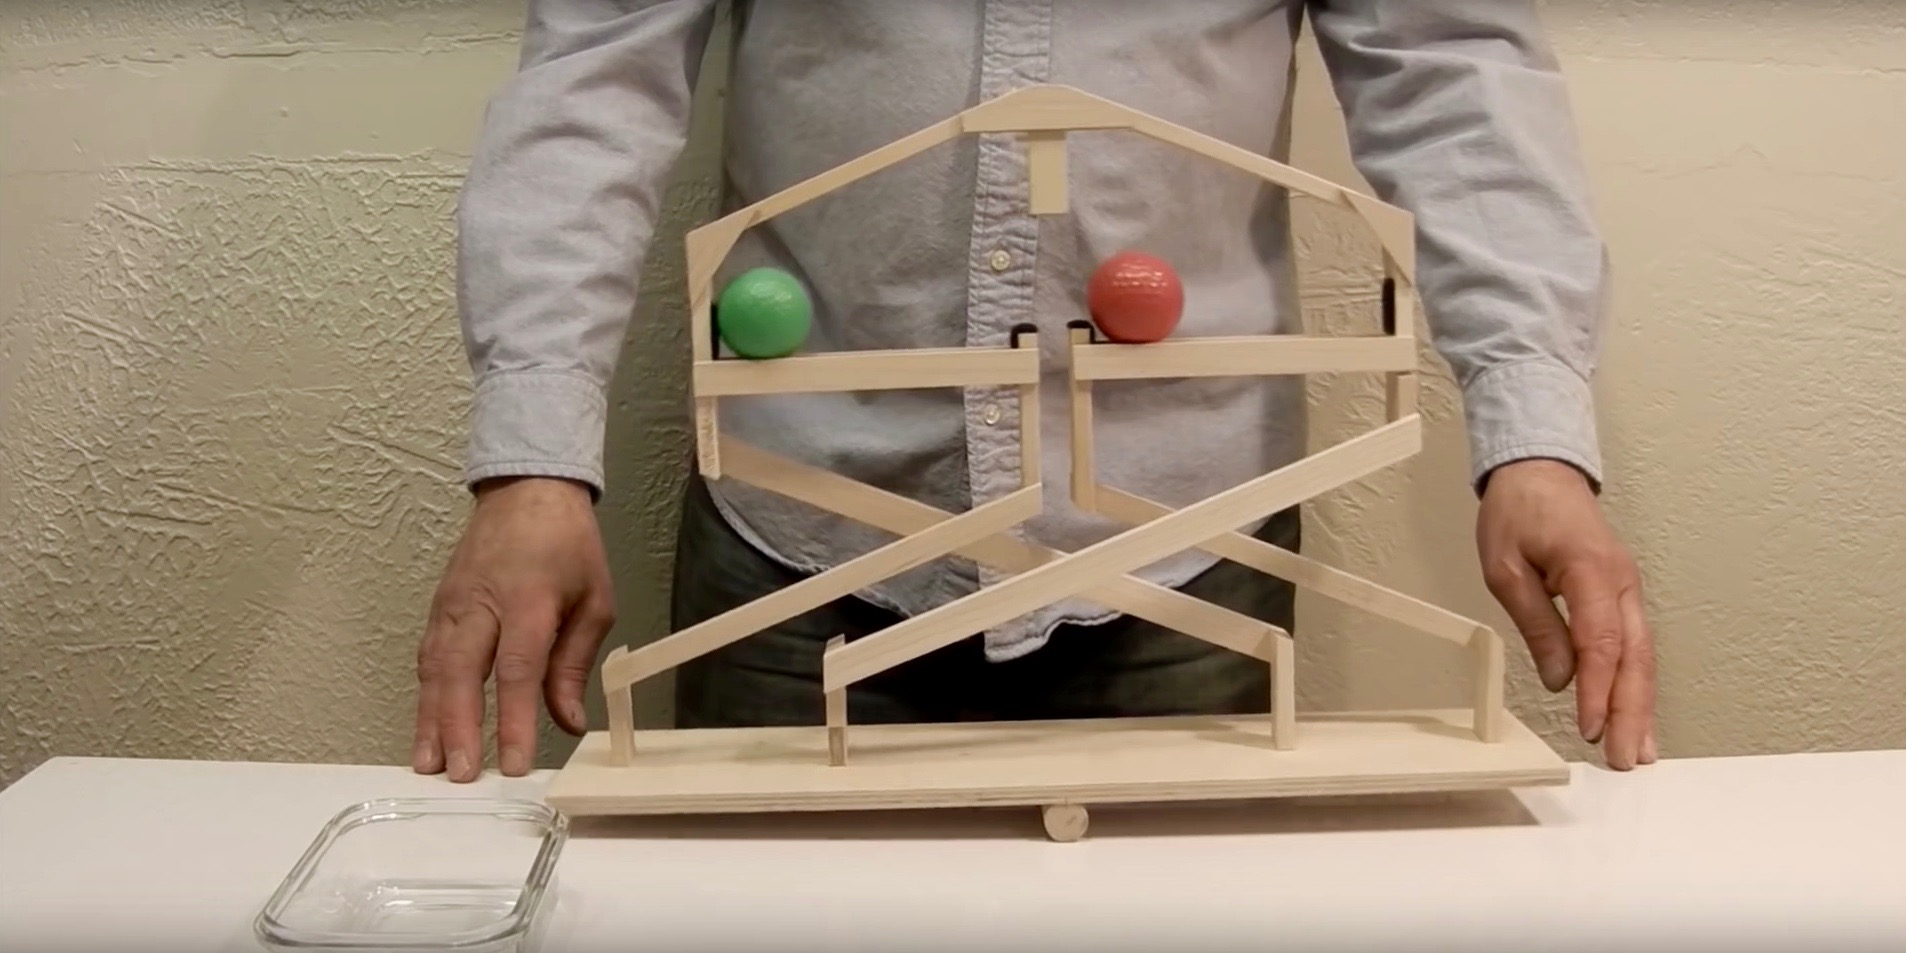 How to make a perpetual motion machine